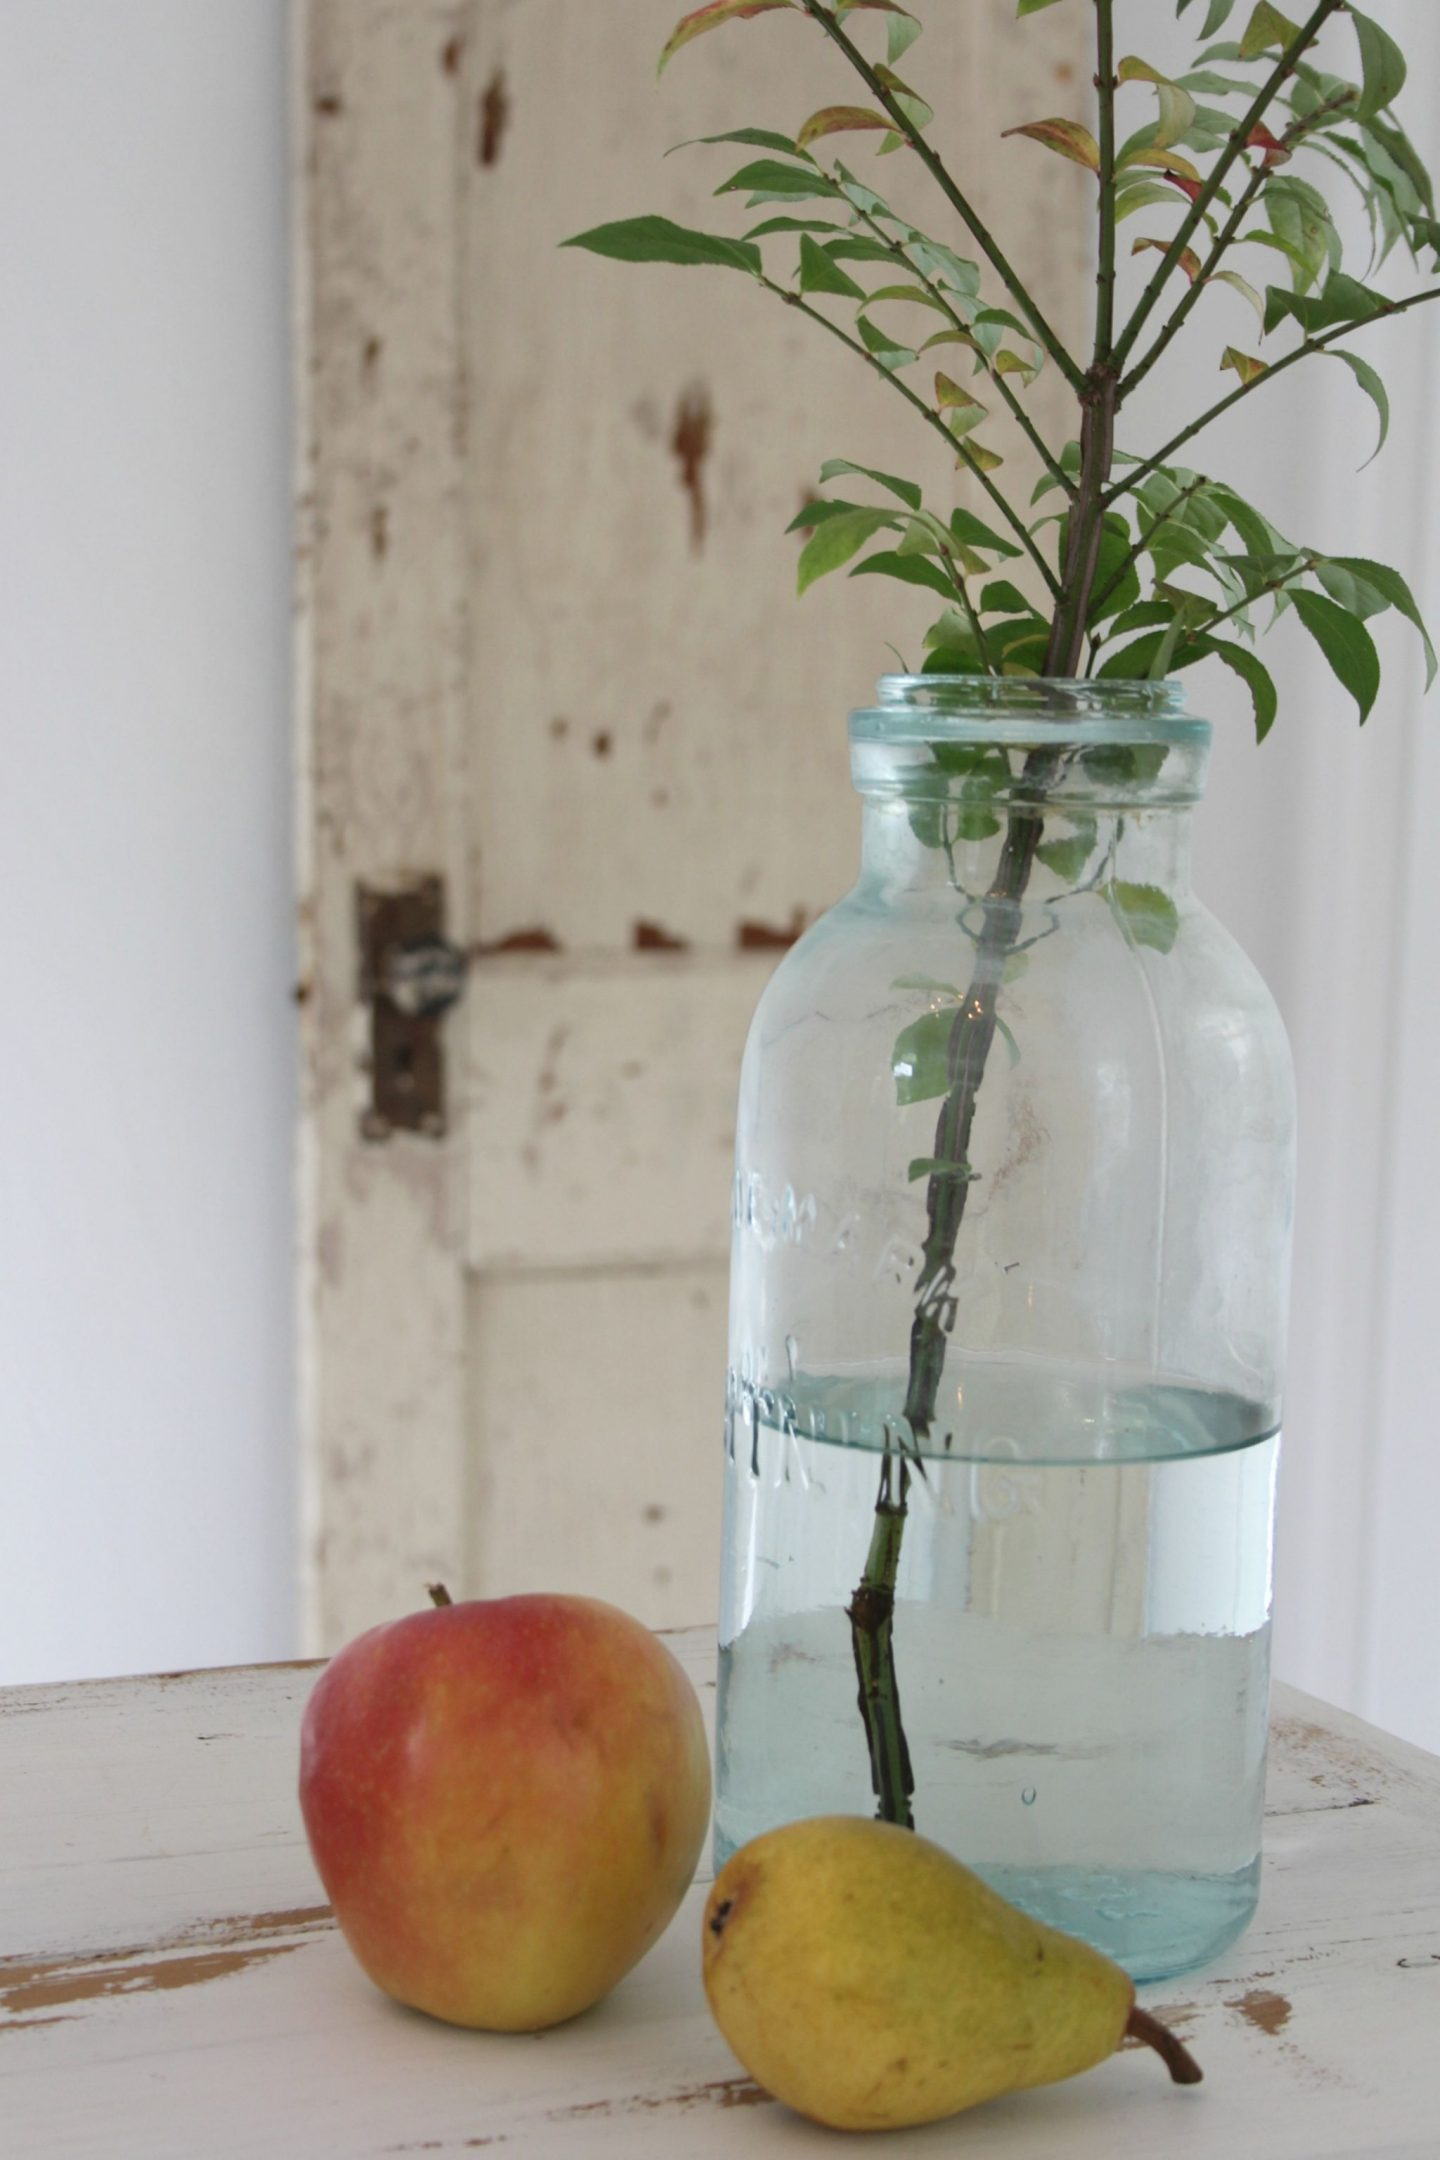 Still life with vintage door, apple, pear, and aqua bottle with branch by Hello Lovely Studio